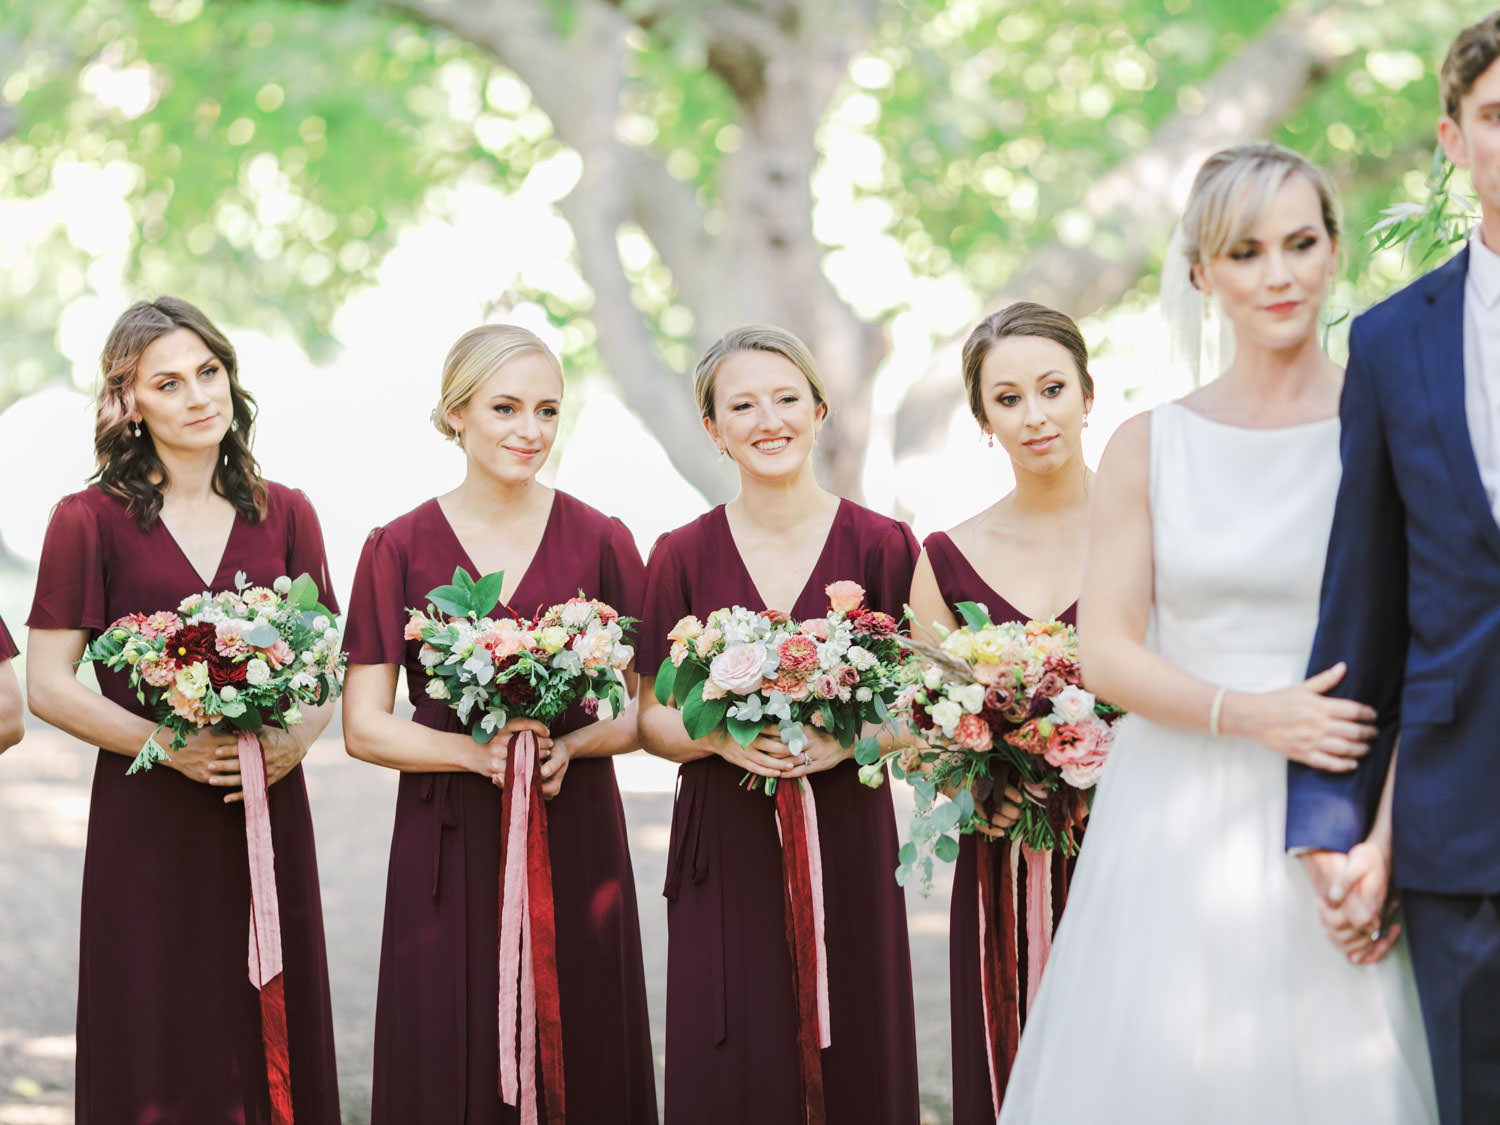 Bridesmaids in deep wine dresses smiling during the ceremony. Full Belly Farm ceremony on Martha Stewart Weddings by film photographer Cavin Elizabeth Photography